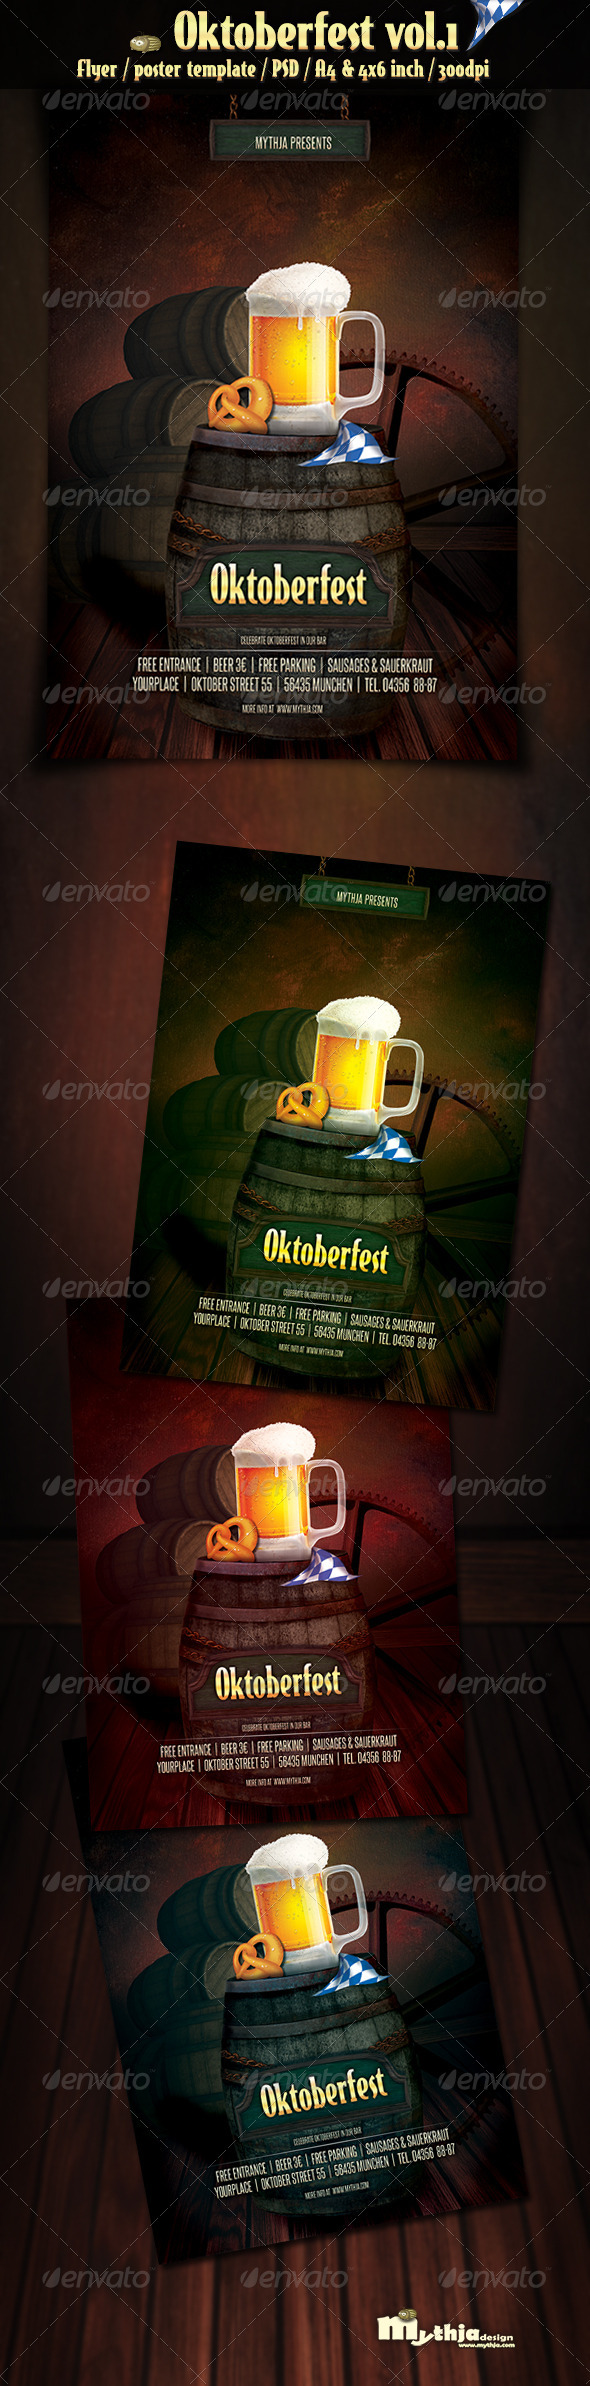 Oktoberfest Vol.1 - Party Flyer/Poster - Clubs & Parties Events